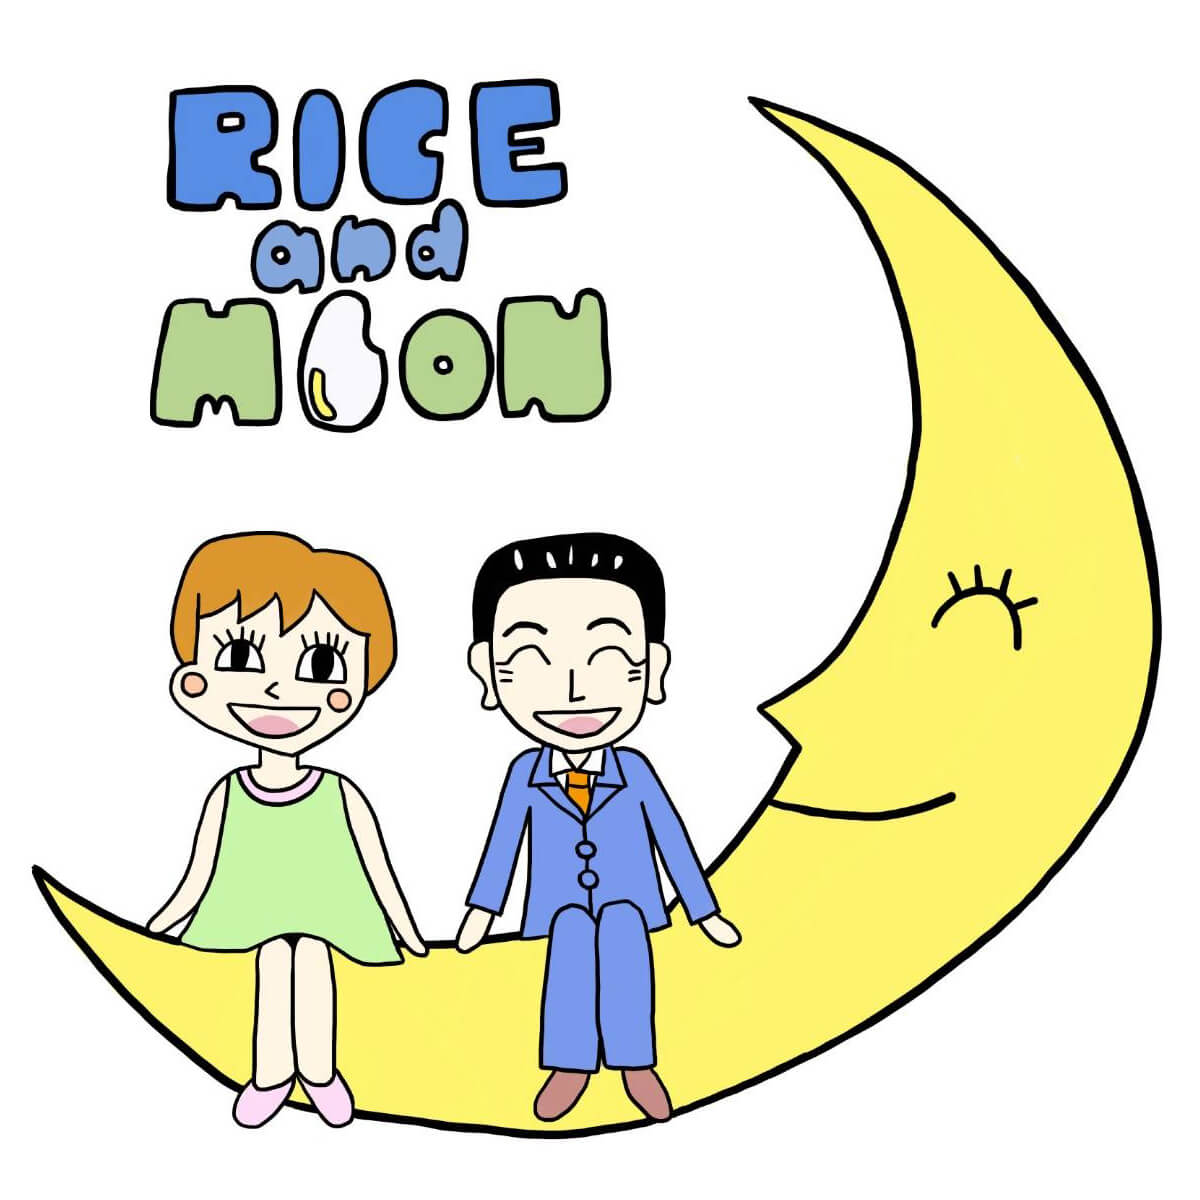 RICE and MOON